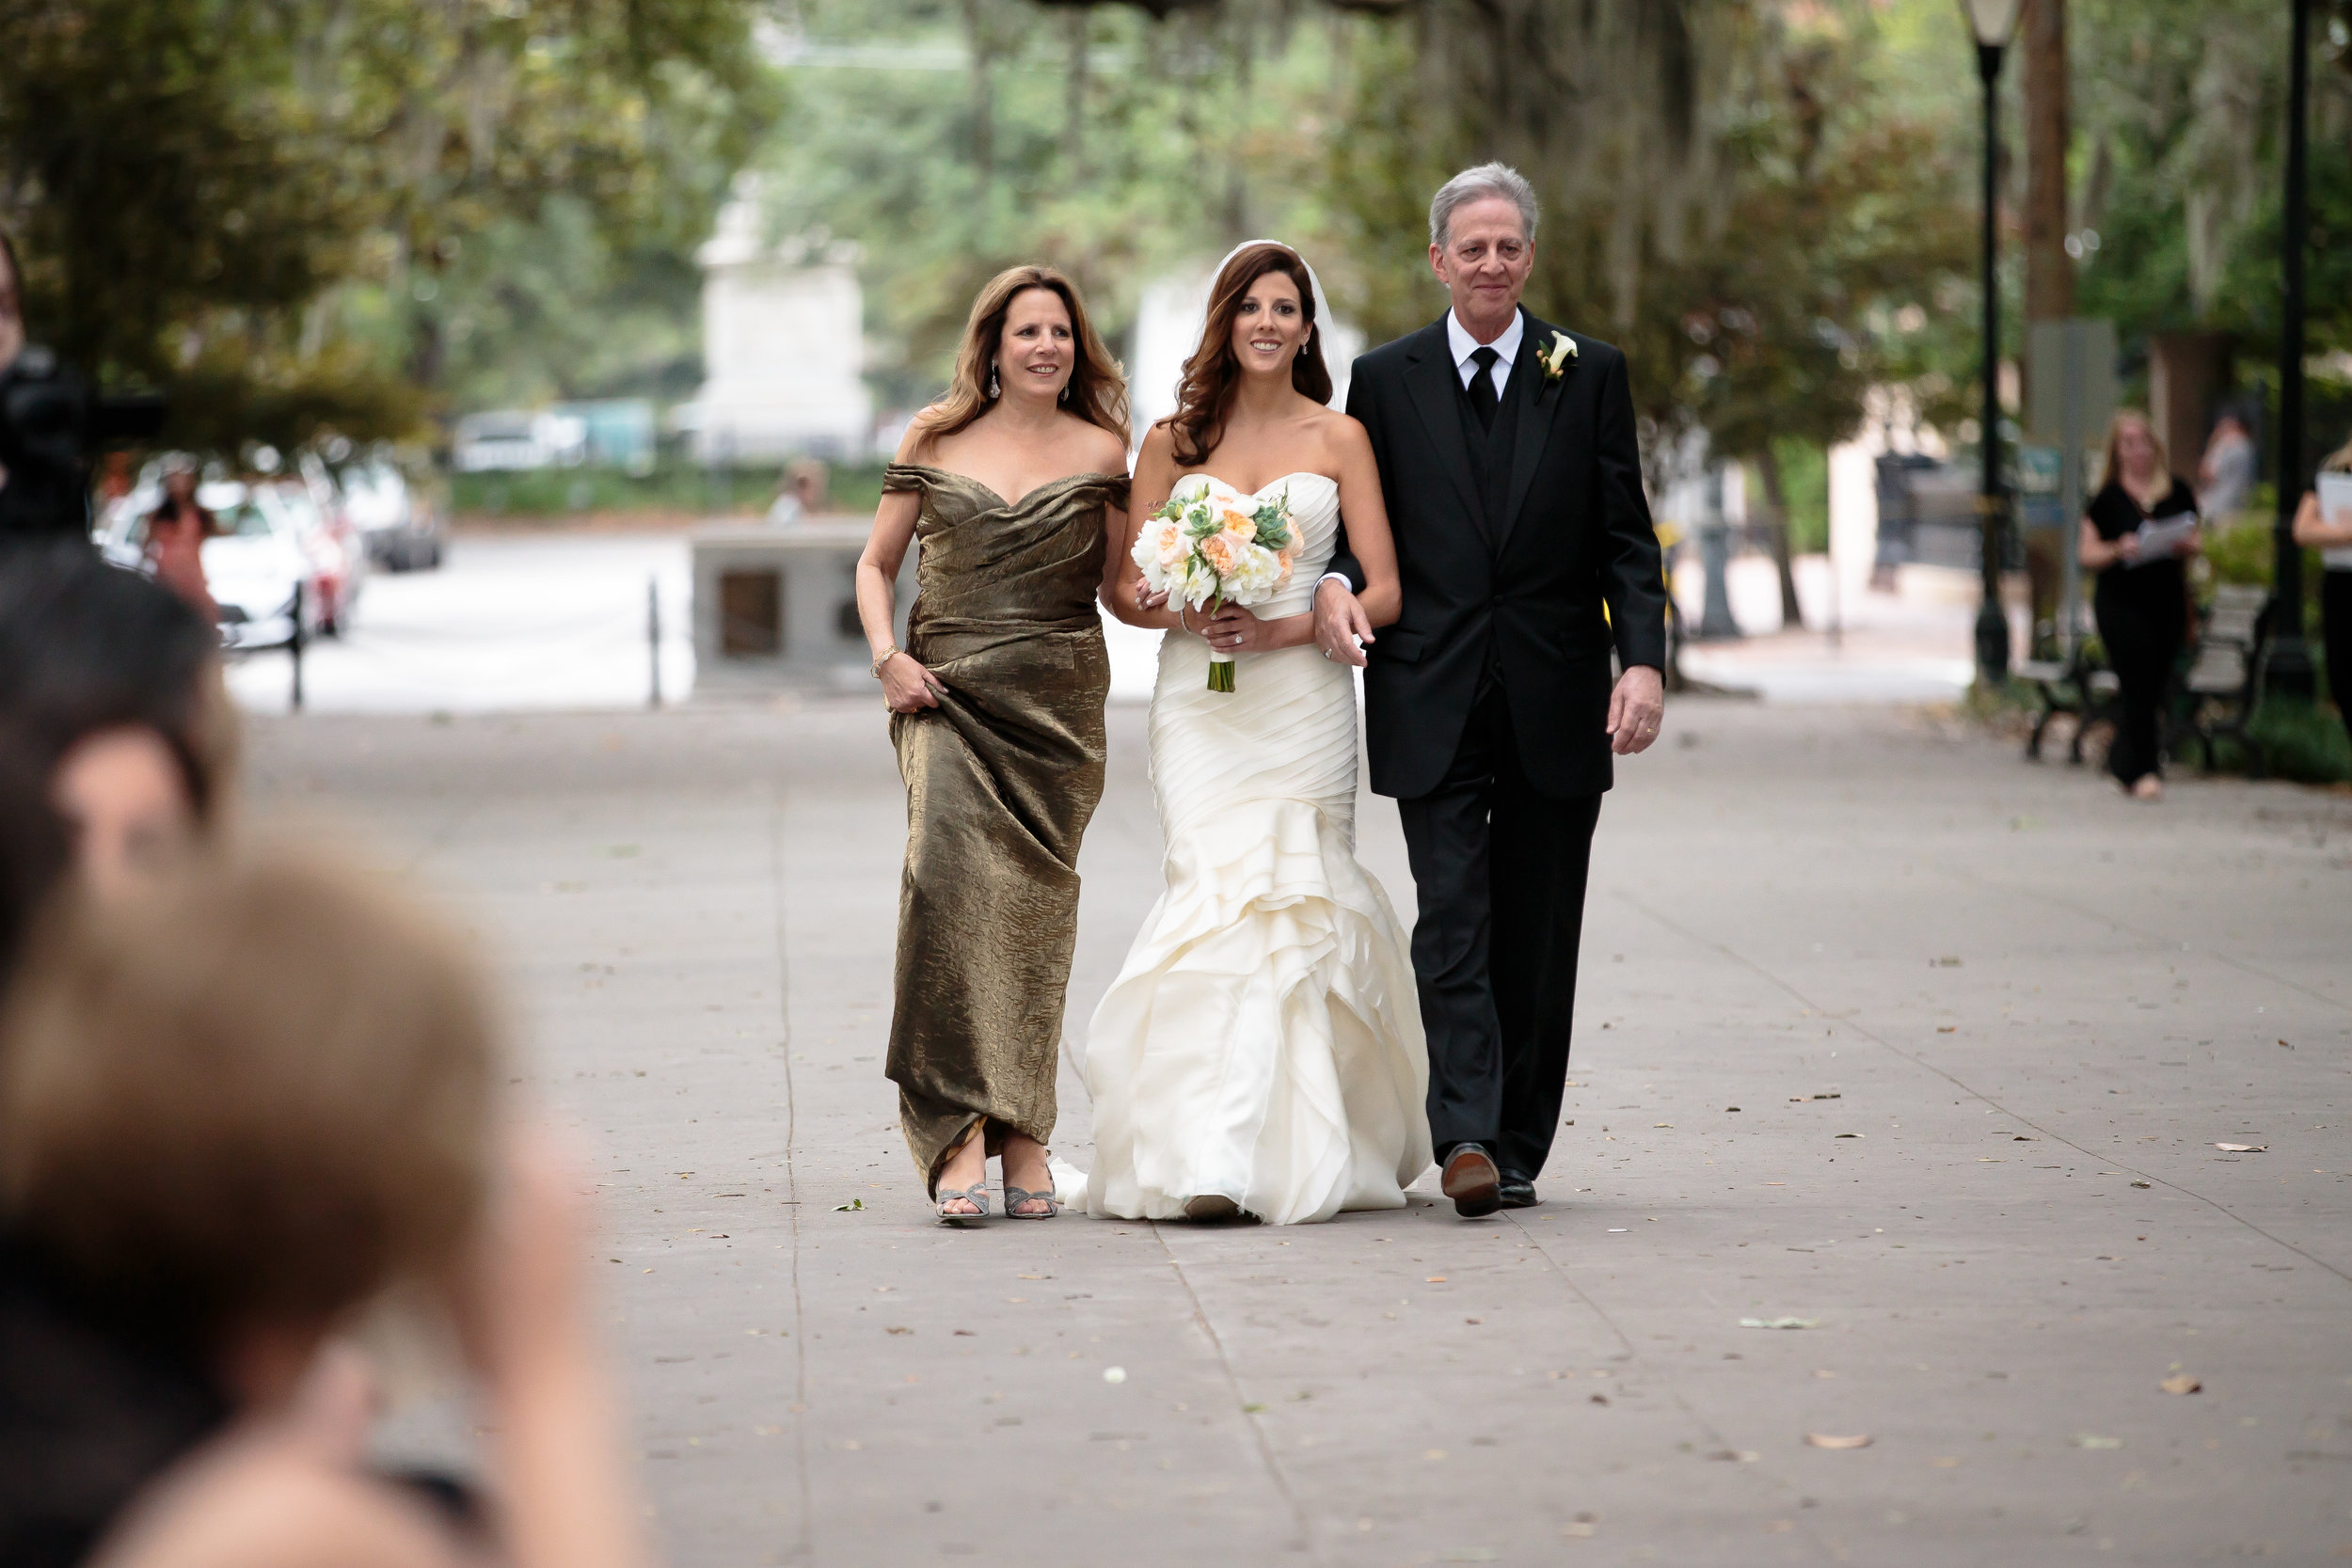 The world's longest processional - It took me at least 10 minutes to walk from the edge of the park to my hubs, which resulted in an excessive amount of pre-nuptial eye contact.